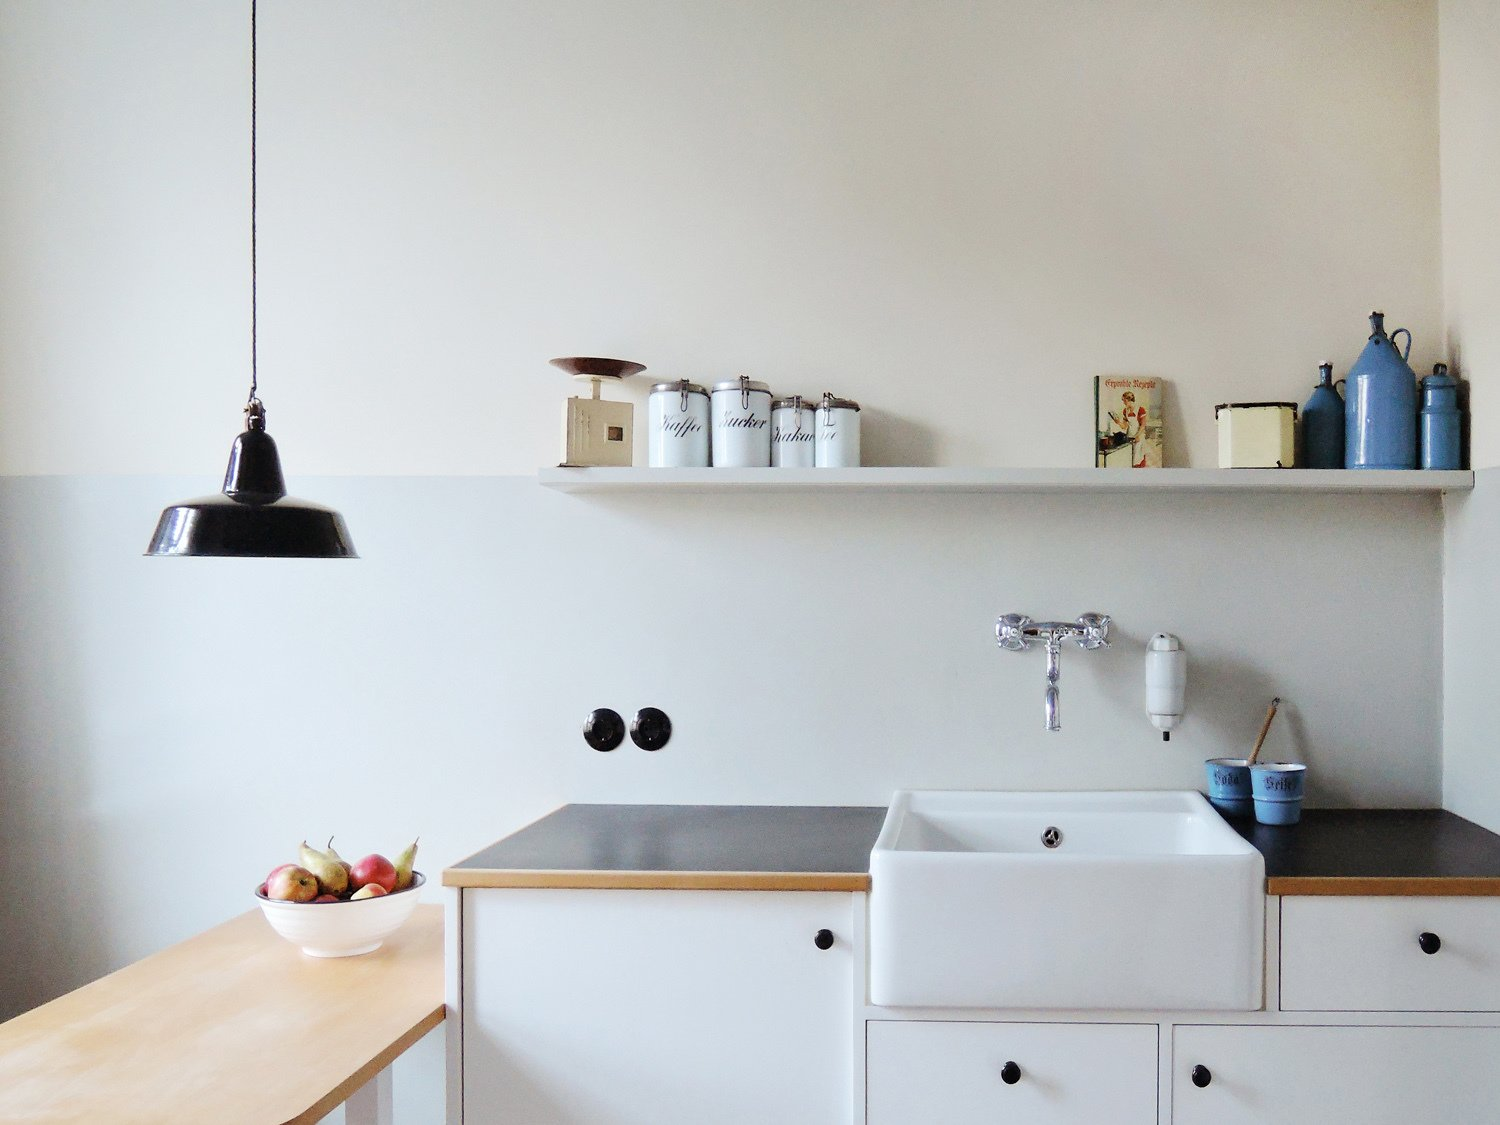 kitchen design, modern comfort hidden + fully applicable Tagged: Kitchen, Laminate, White, Wood, Pendant, Track, Accent, Refrigerator, and Dishwasher.  Best Kitchen White Track Photos from Taut´s Home (Tautes Heim) - Rentable museum of design and architecture of the 1920s